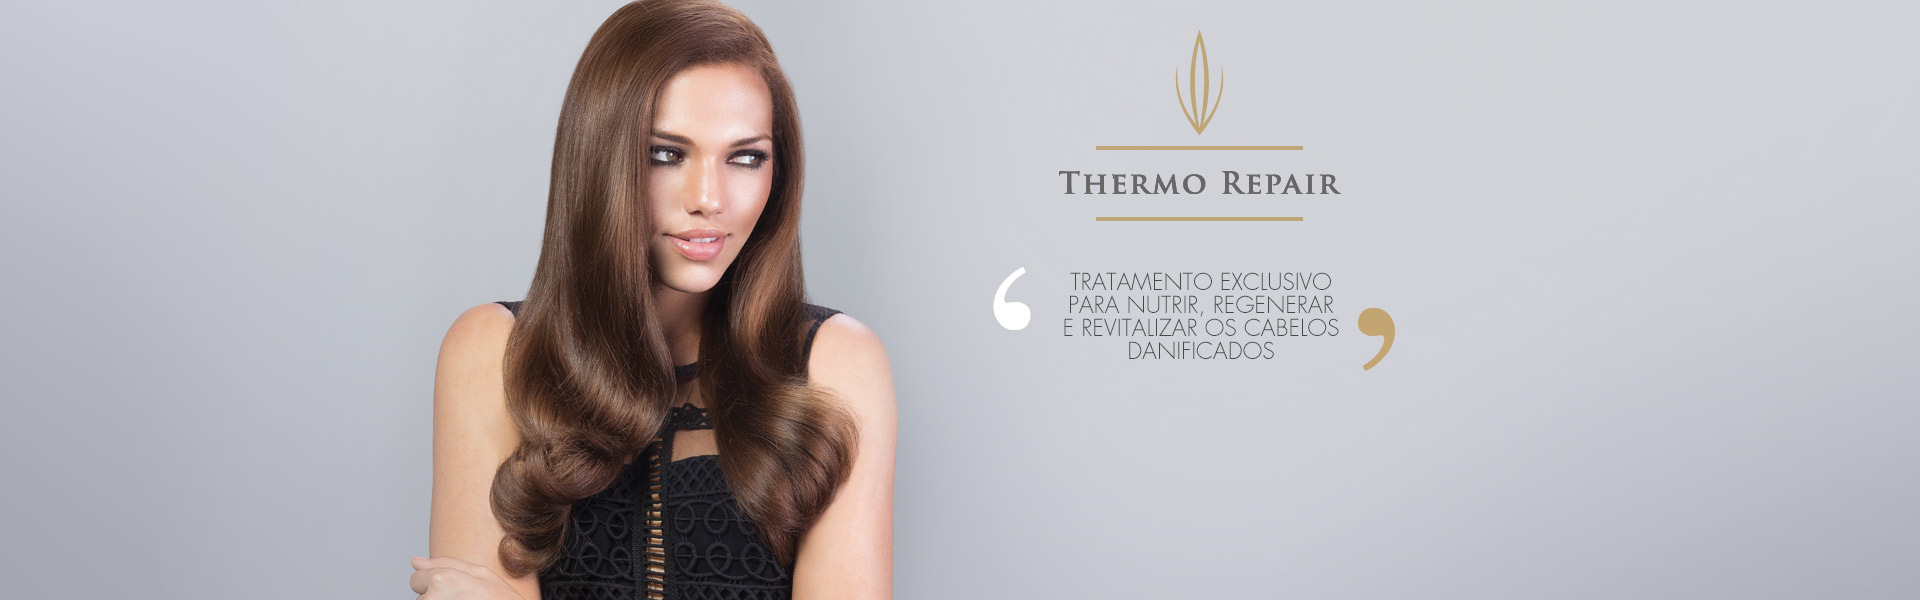 thermo_repair_pt